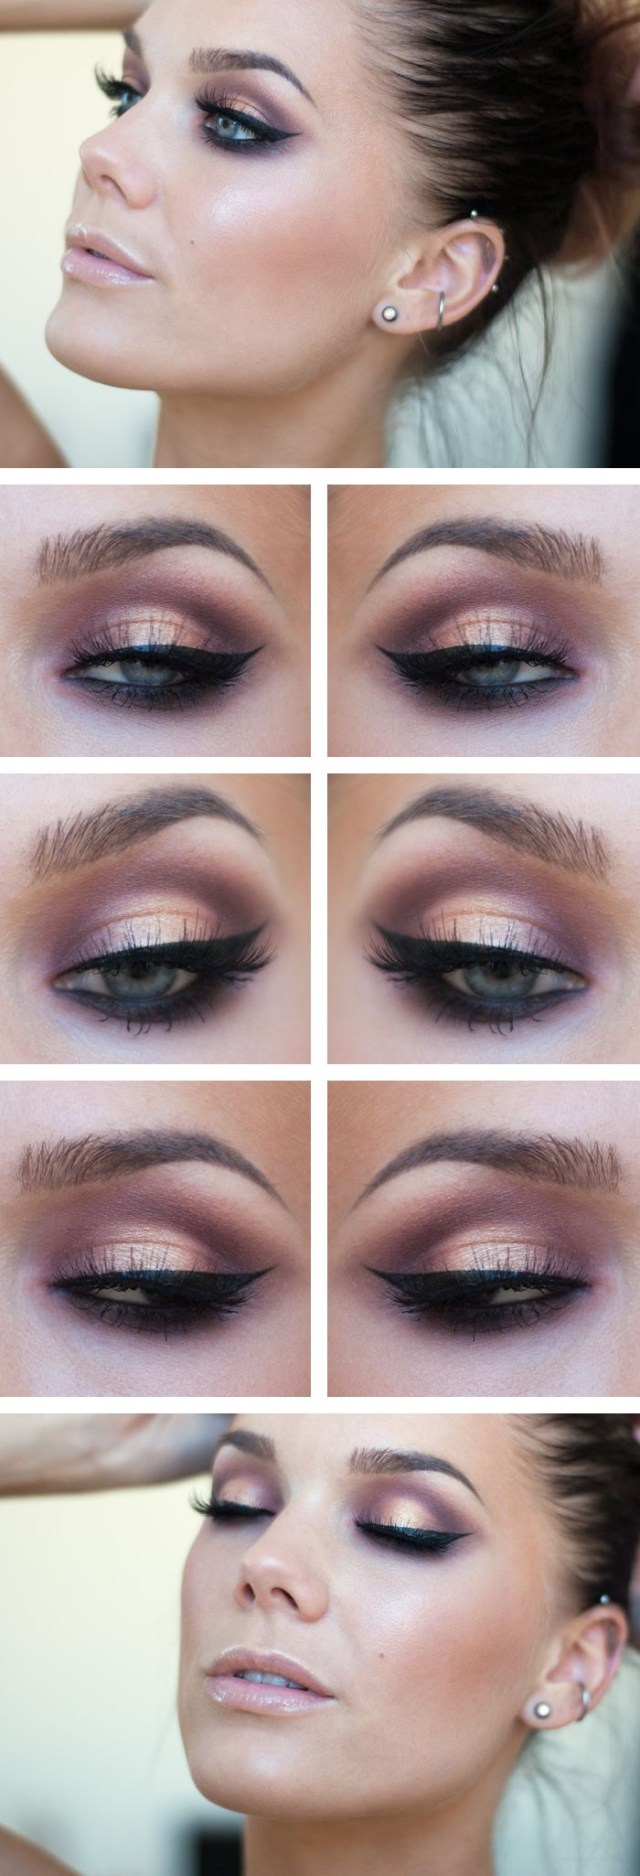 Pretty Light Eye Makeup Simple Yet Stylish Light Makeup Ideas To Try For Daily Occasions